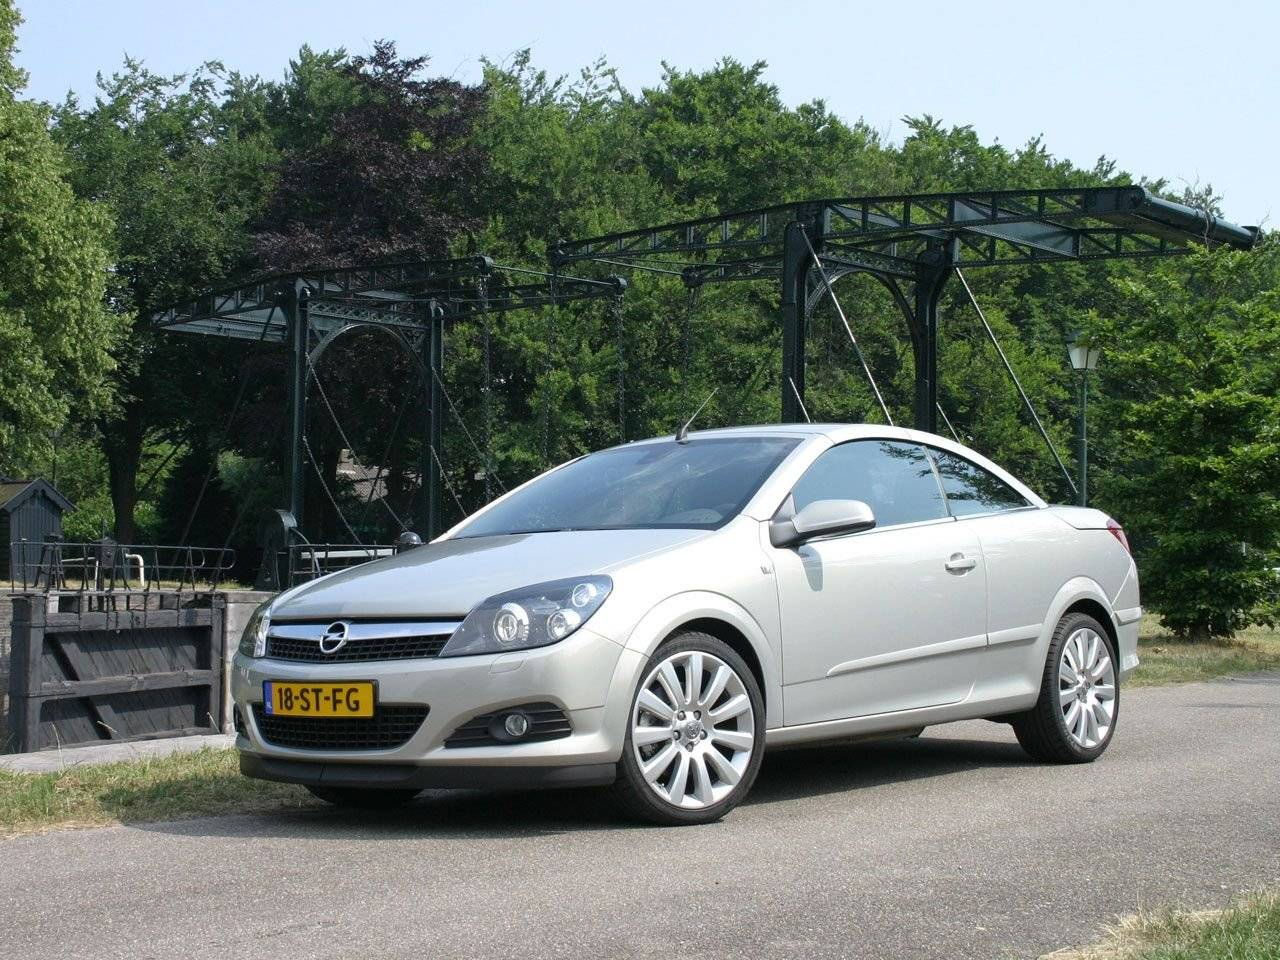 test opel astra twintop trendvolger autotests. Black Bedroom Furniture Sets. Home Design Ideas